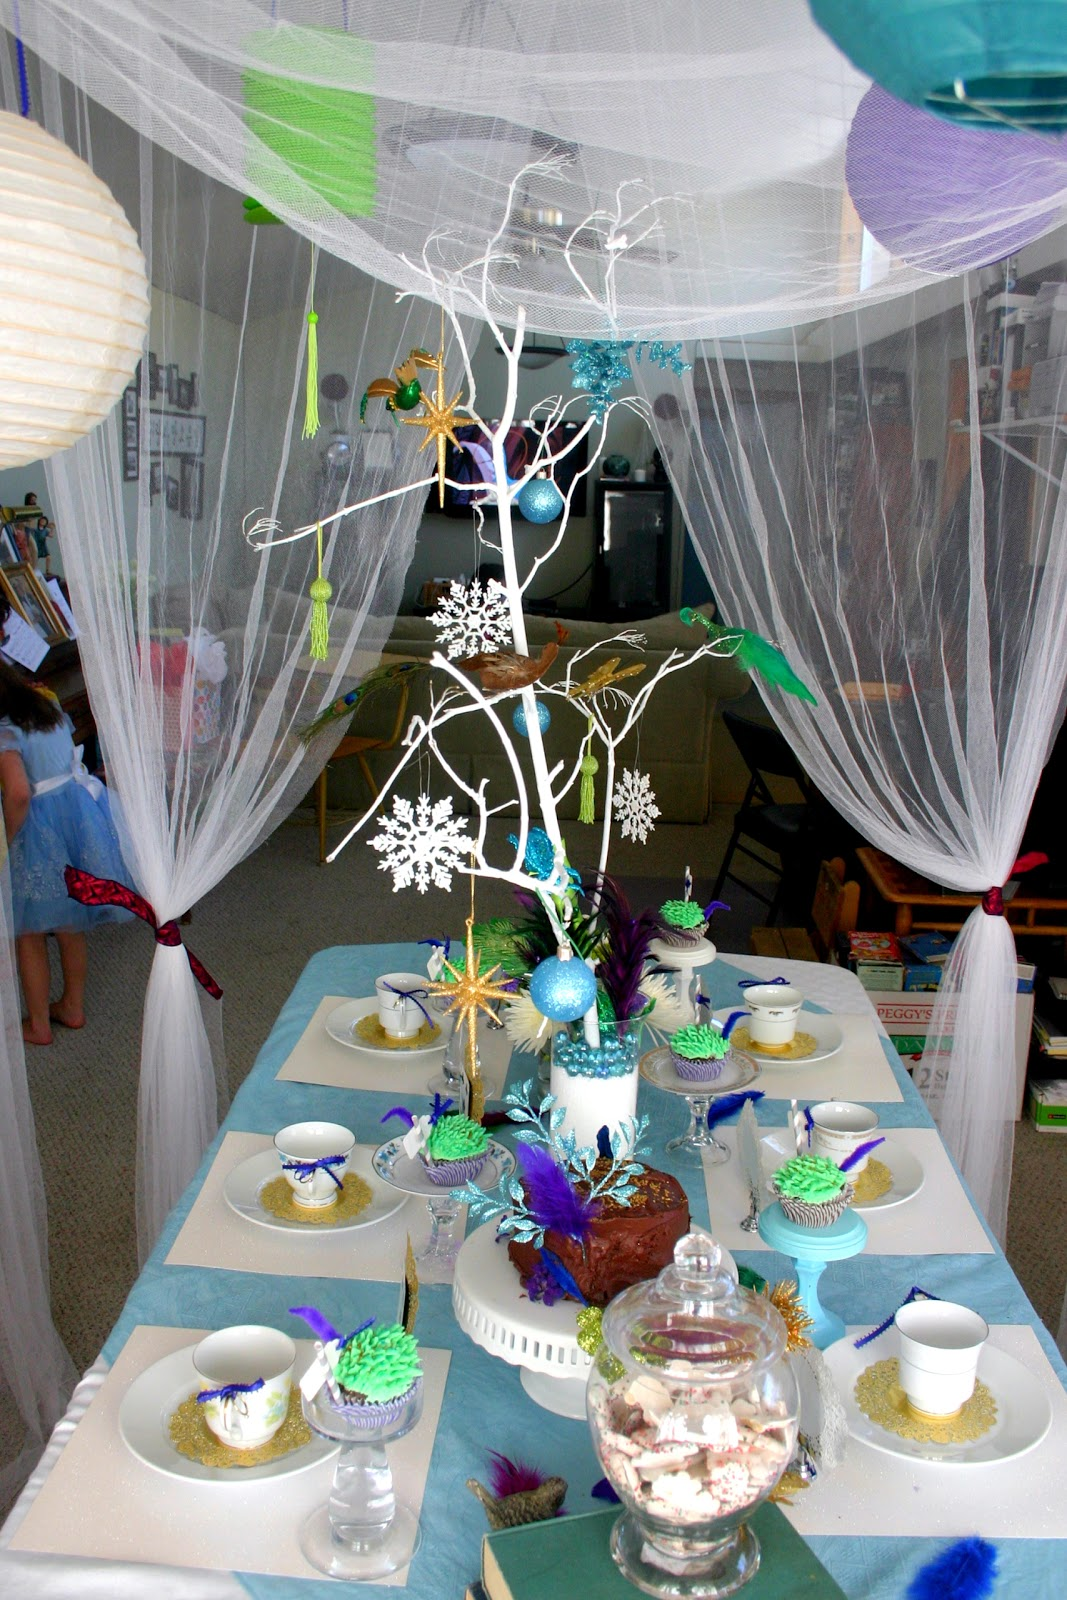 Bonne nouvelle alice in winter wonderland tea party - Alice in wonderland tea party decorations ...